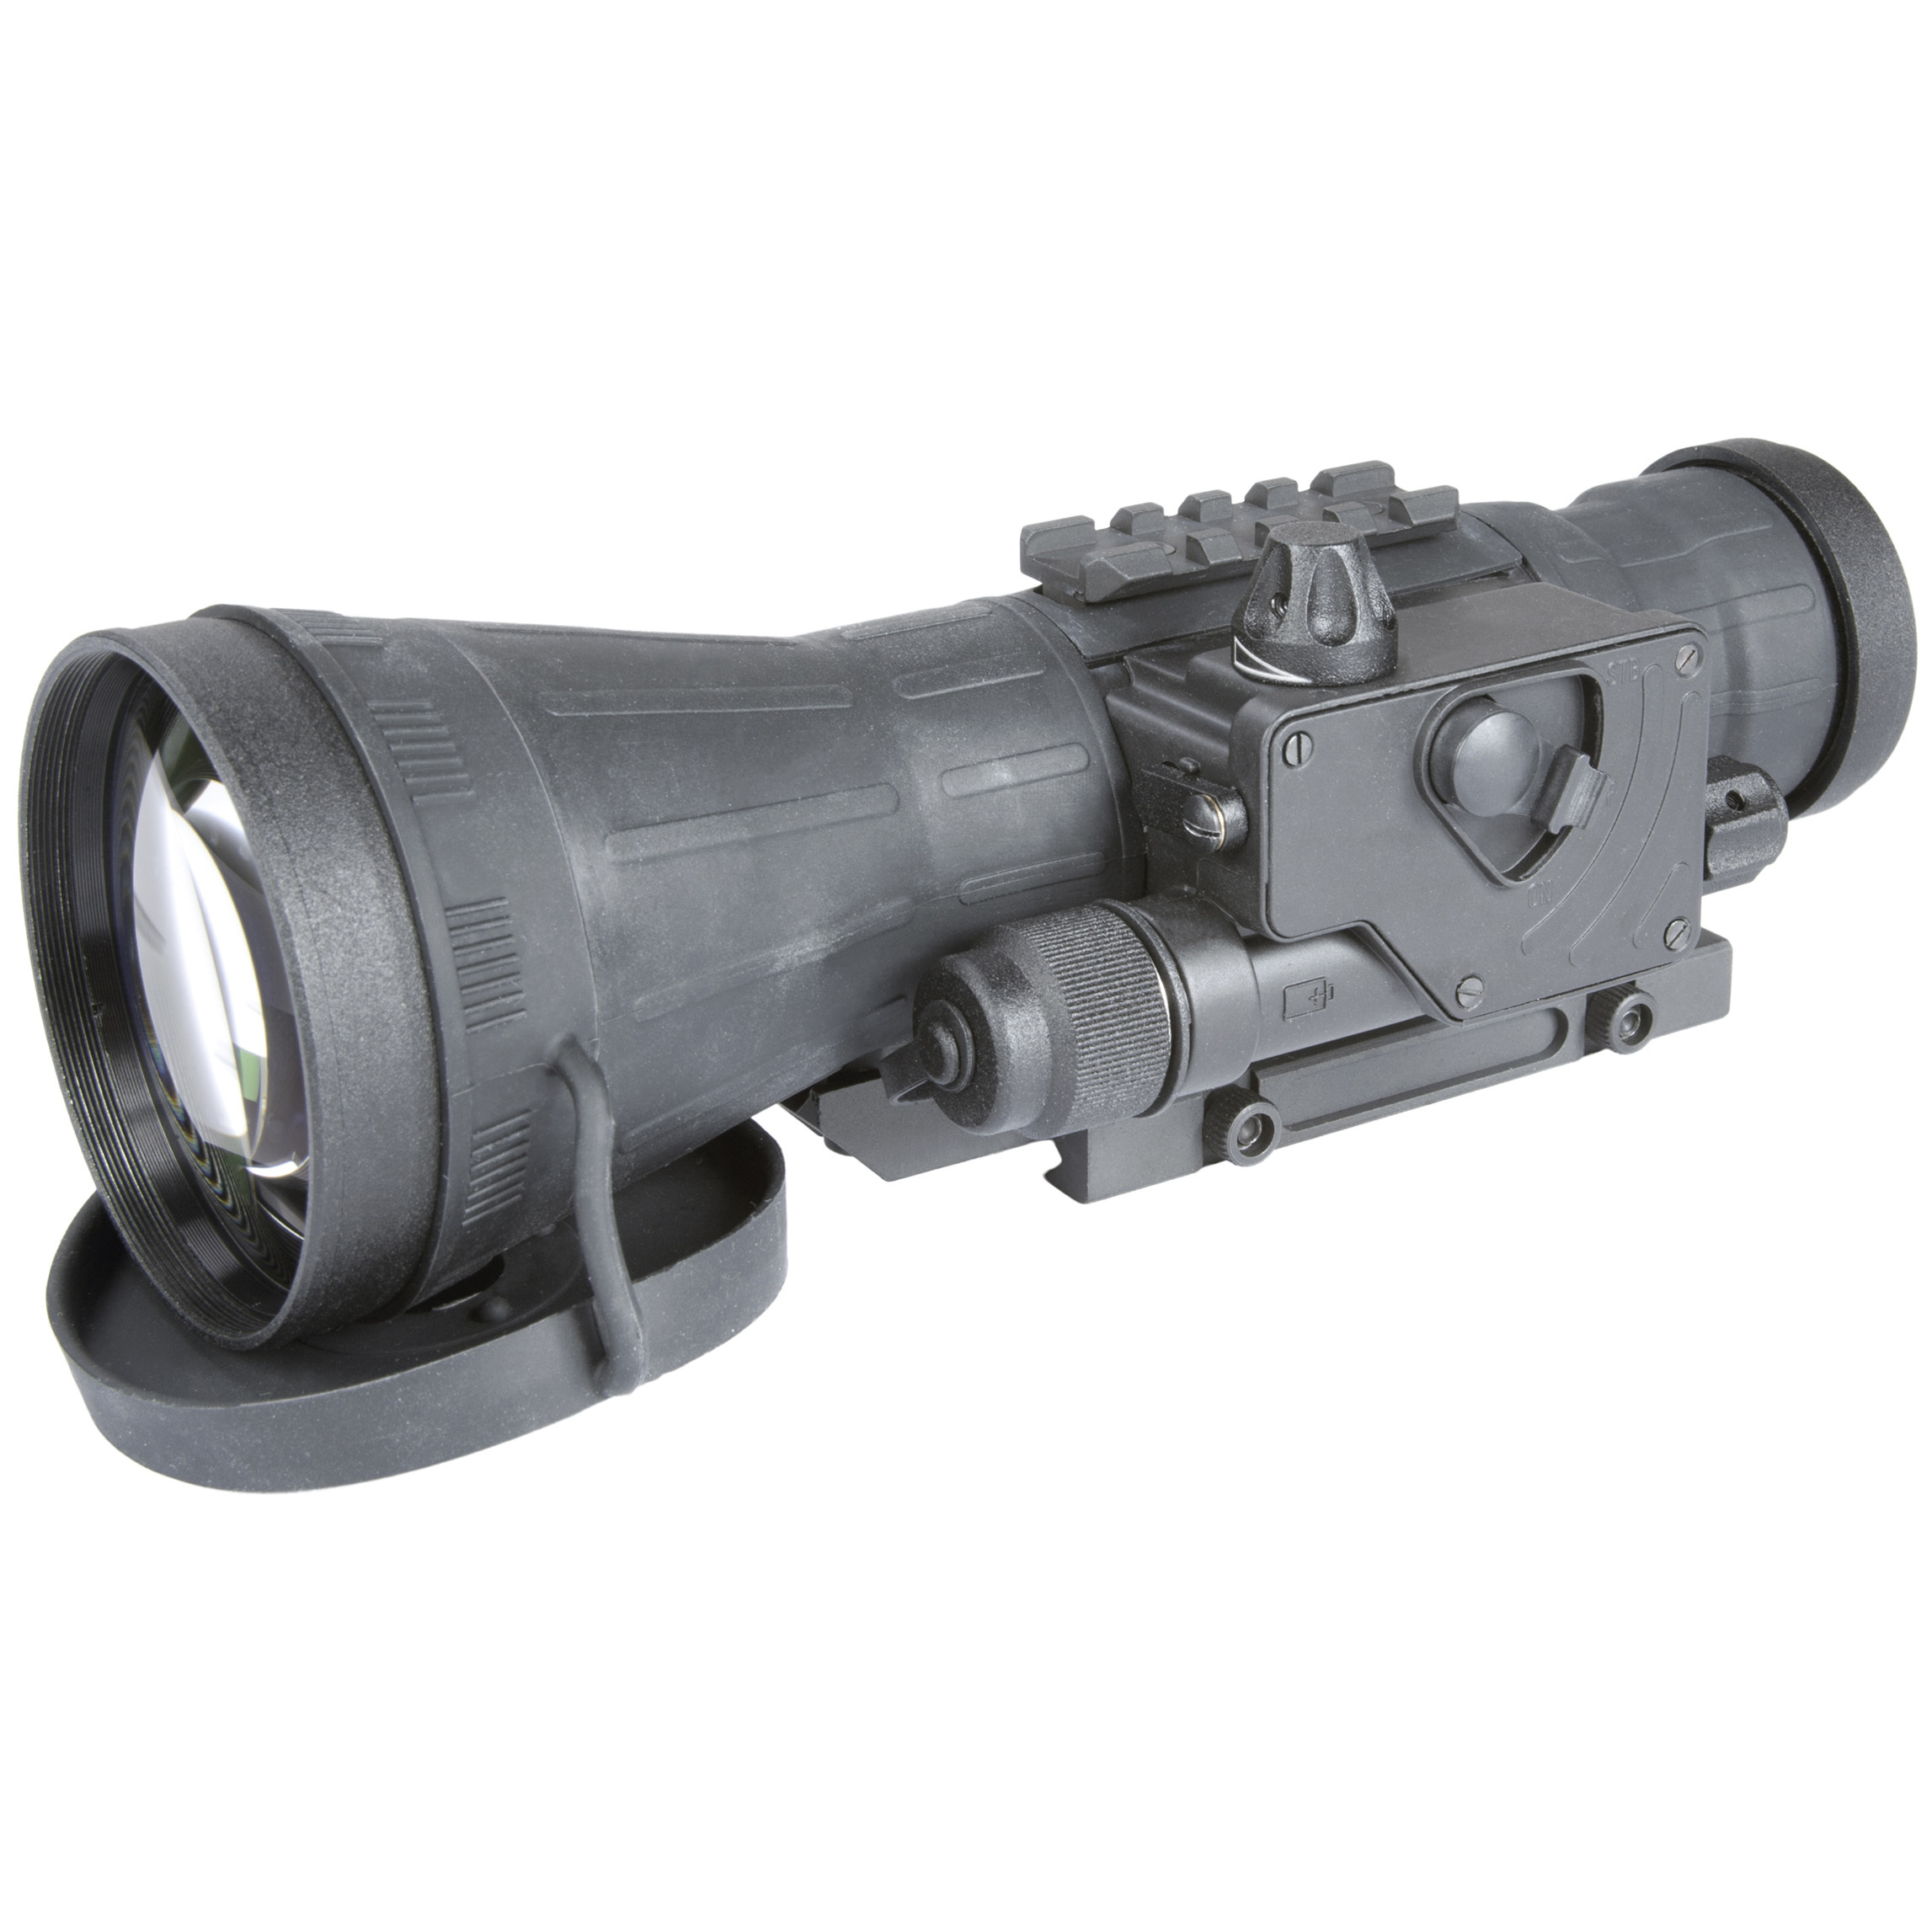 "Armasight CO-LR Gen 3P MG Night Vision Clip-on System. Designed for use with most commercial and mil-spec daytime scopes, telescopes or binoculars (up to 12X magnification), this CO-LR Gen 3P MG can be mounted / dismounted on a standard Picatinny rail in seconds... no tools required! It's mounted in front of your own day scope, so your eye relief is not altered. Plus, your shot release and follow through all remain intuitive. It's also factory bore-sighted to better than 1 MOA accuracy, so no alteration in zero is experienced. Packed with innovative features... like manual gain control, a bright light cut-off system, and wireless remote control, the CO-LR Gen 3P MG Night Vision Clip-on System is designed to make quick, intuitive shooting just as easy at night as it is during the day.Features:1X magnification Mounts in front of your rifle scope with no zeroing required Manual gain control Detachable long-range IR illuminator Bright light cut-off system Quick-release mount Low battery indicator Includes wireless remote Mil-standard compliant Runs on 1 CR123A battery (included) or 1 AA battery (not included) Includes battery adapter, lens cap, light suppressor, Picatinny adapter, carrying case and lens tissue Measures 3.8 x 3.14 x 9.25""l. Weighs 2 lbs. Specifications:IIT generation: Gen 3 high-performance ITT pinnacle manual gain Resolution: 64-72 lp / mm Exit pupil diameter: 40mm Lens system: F1: 1.54, 108mm 10 degrees F.O.V. Range of focus: 10 to infinity Controls: direct Battery life: 40 hours (CR123A) or 25 hours (AA) Environmental rating: waterproof Operating temperature: -40 degrees to 120 degrees F. Storage temperature: -40 degrees to 120 degrees F. - $4,819.99"